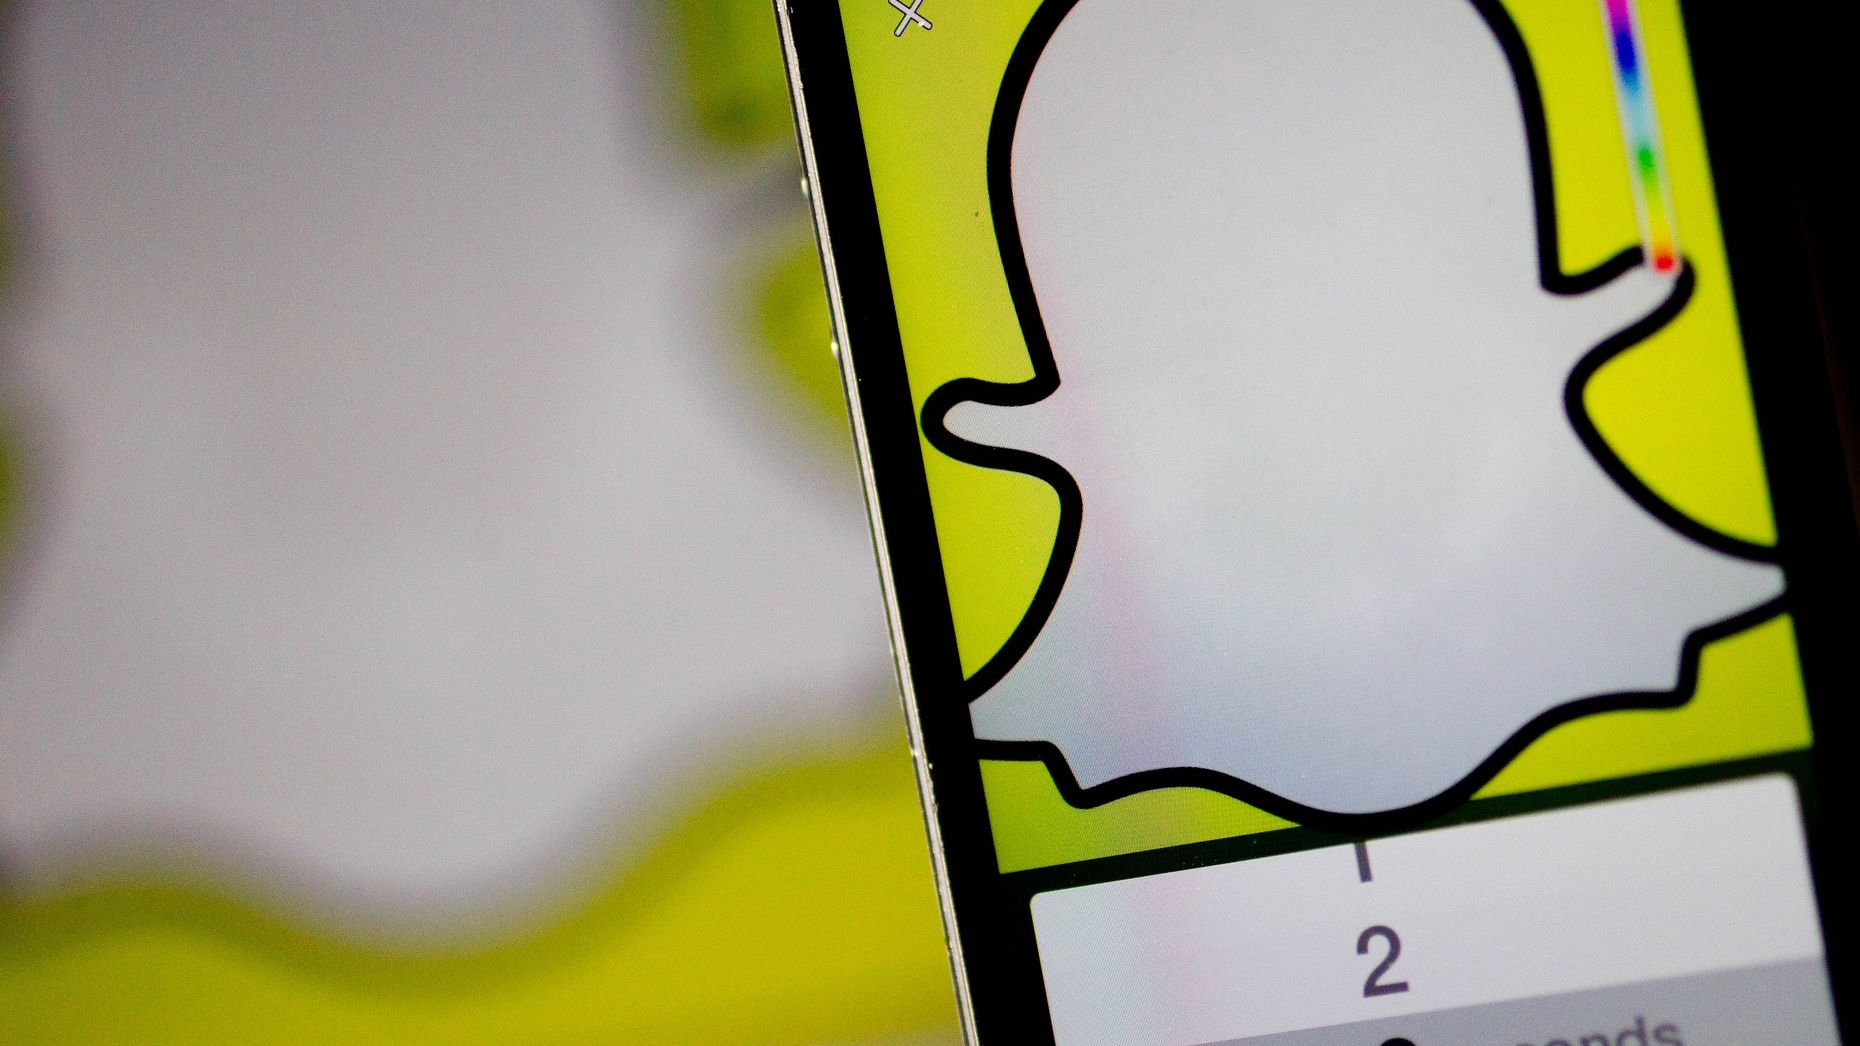 The Snapchat app. Photo by Bloomberg